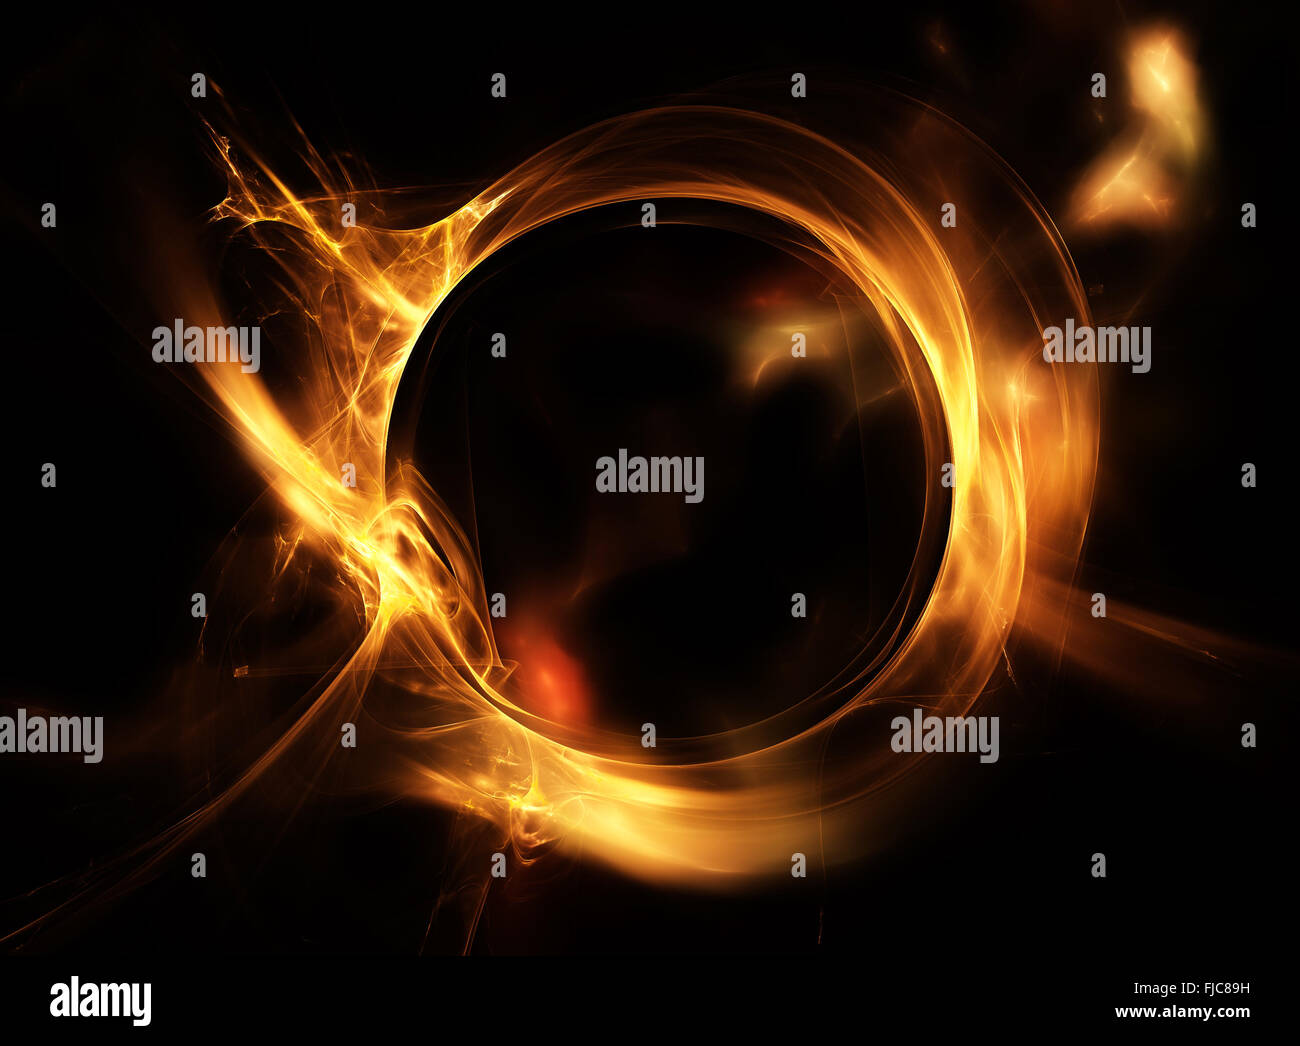 Fire ring. Abstract fiery circle on a black background - Stock Image